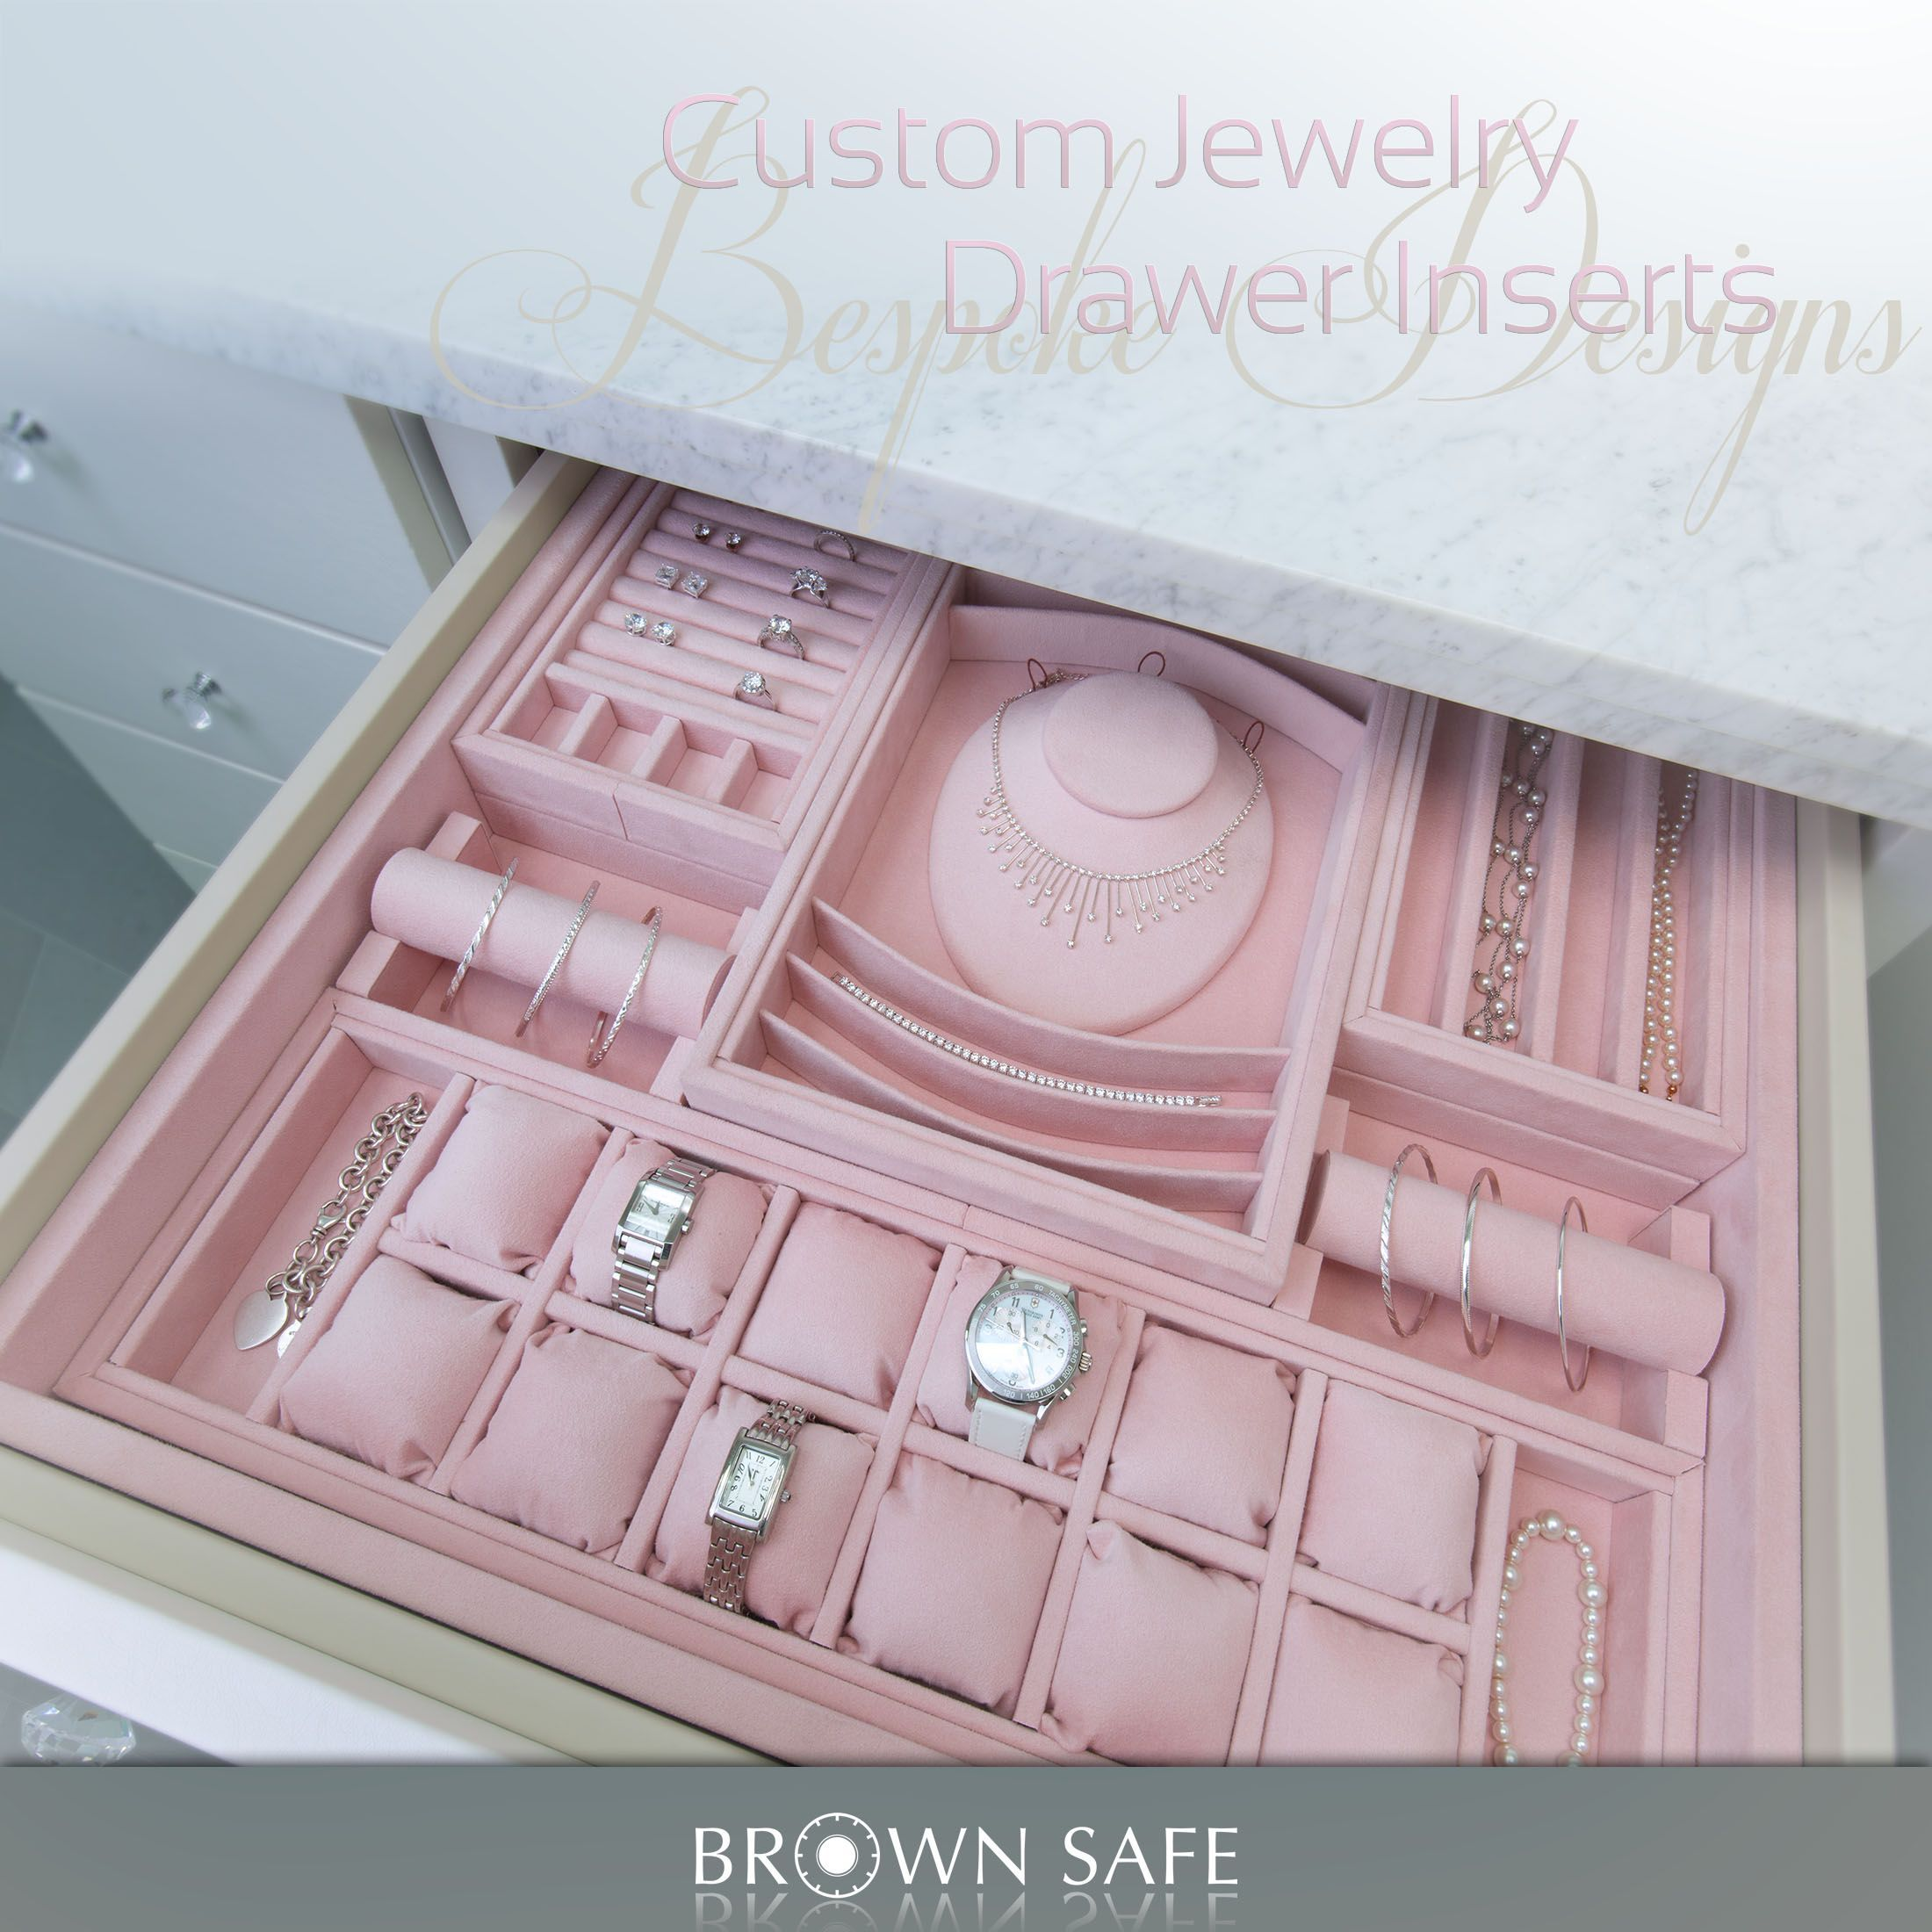 Custom Drawer Inserts -  Ultrasuede lined drawer inserts for jewelry perfectly organize your collection. Custom jewelry tray - #bohemianjewelry #custom #drawer #inserts #jewelrybranding #jewelrycollection #jewelrydrawing